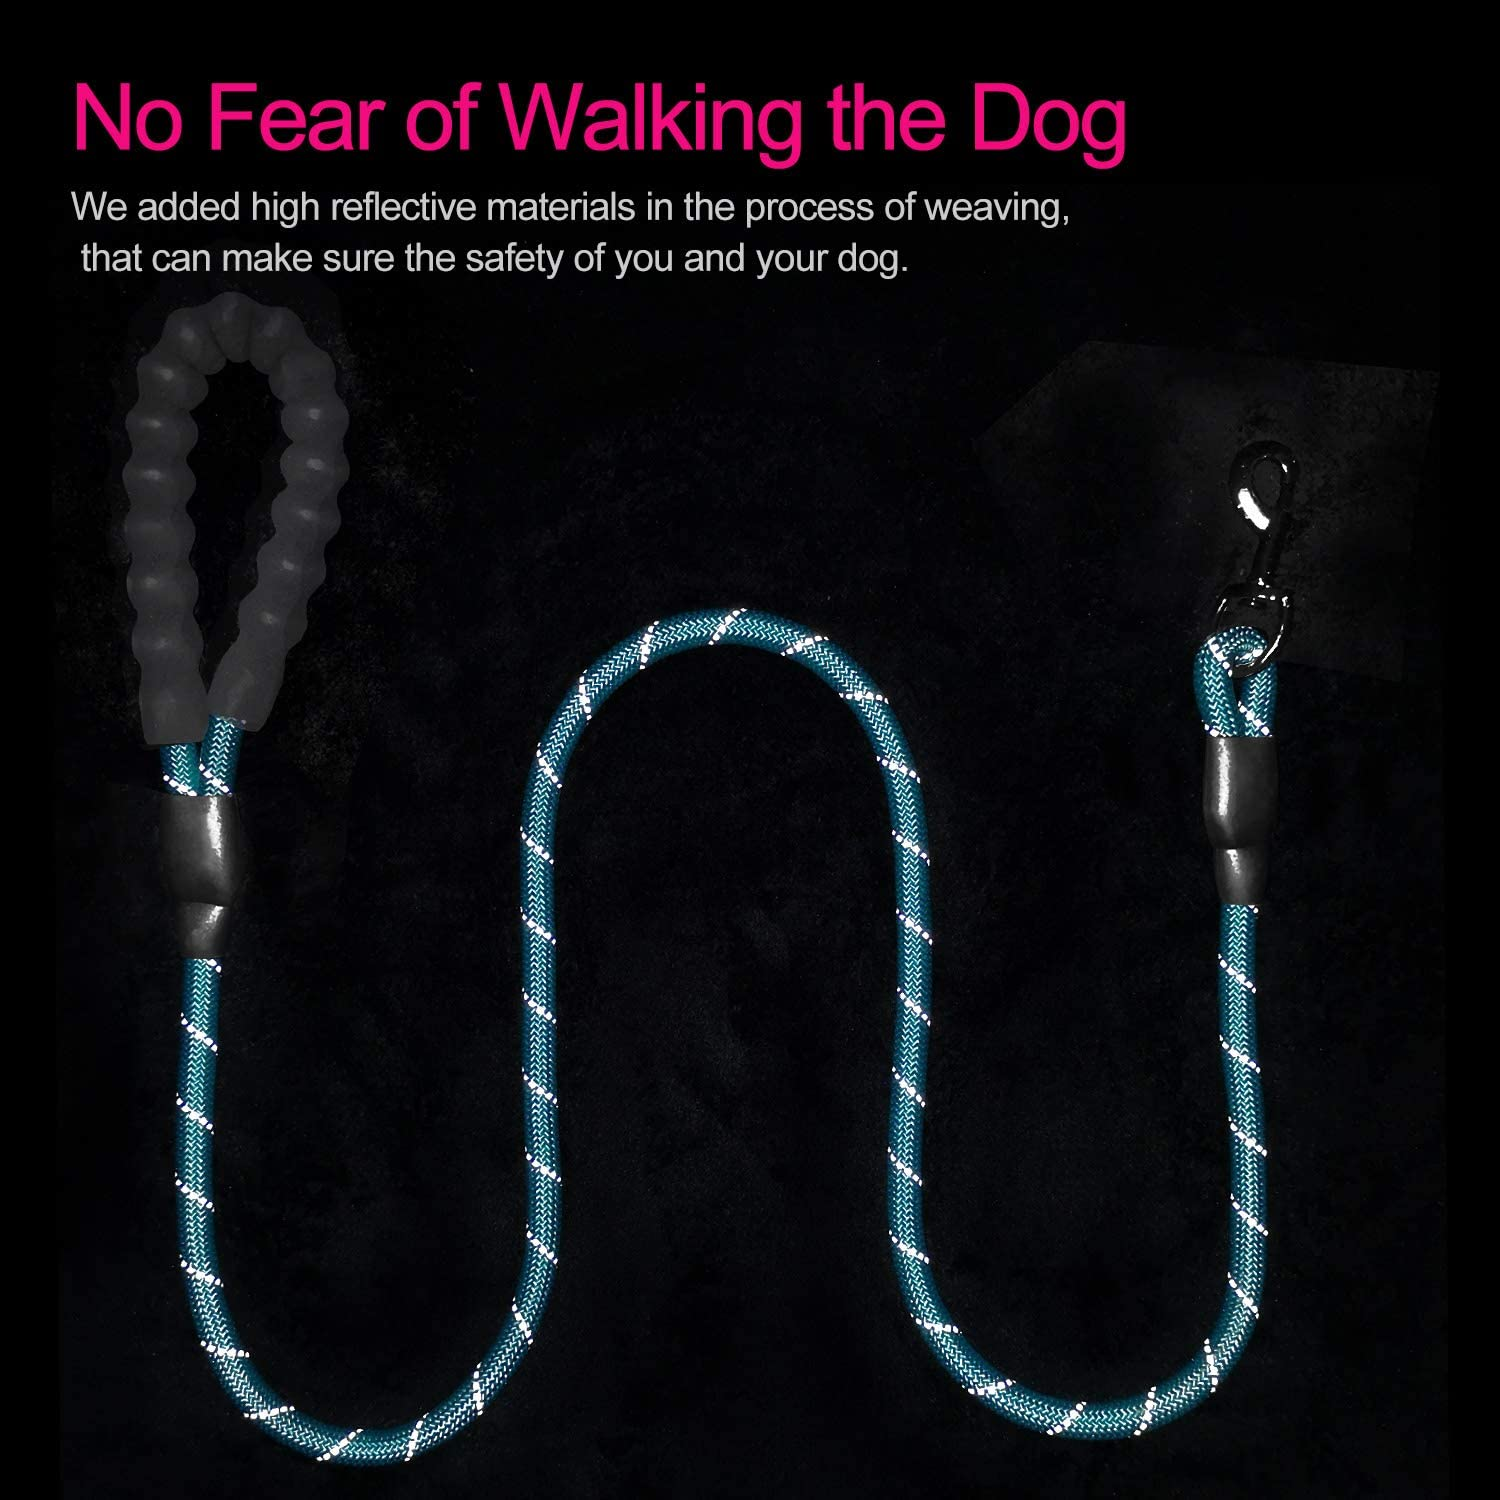 VLDCO 10 FT Strong Dog Leash Extra Heavy Duty Rock Climbing Rope Comfortable Padded Handle Highly Reflective Threads for Small Medium Large Dogs 1//2 inch Diameter